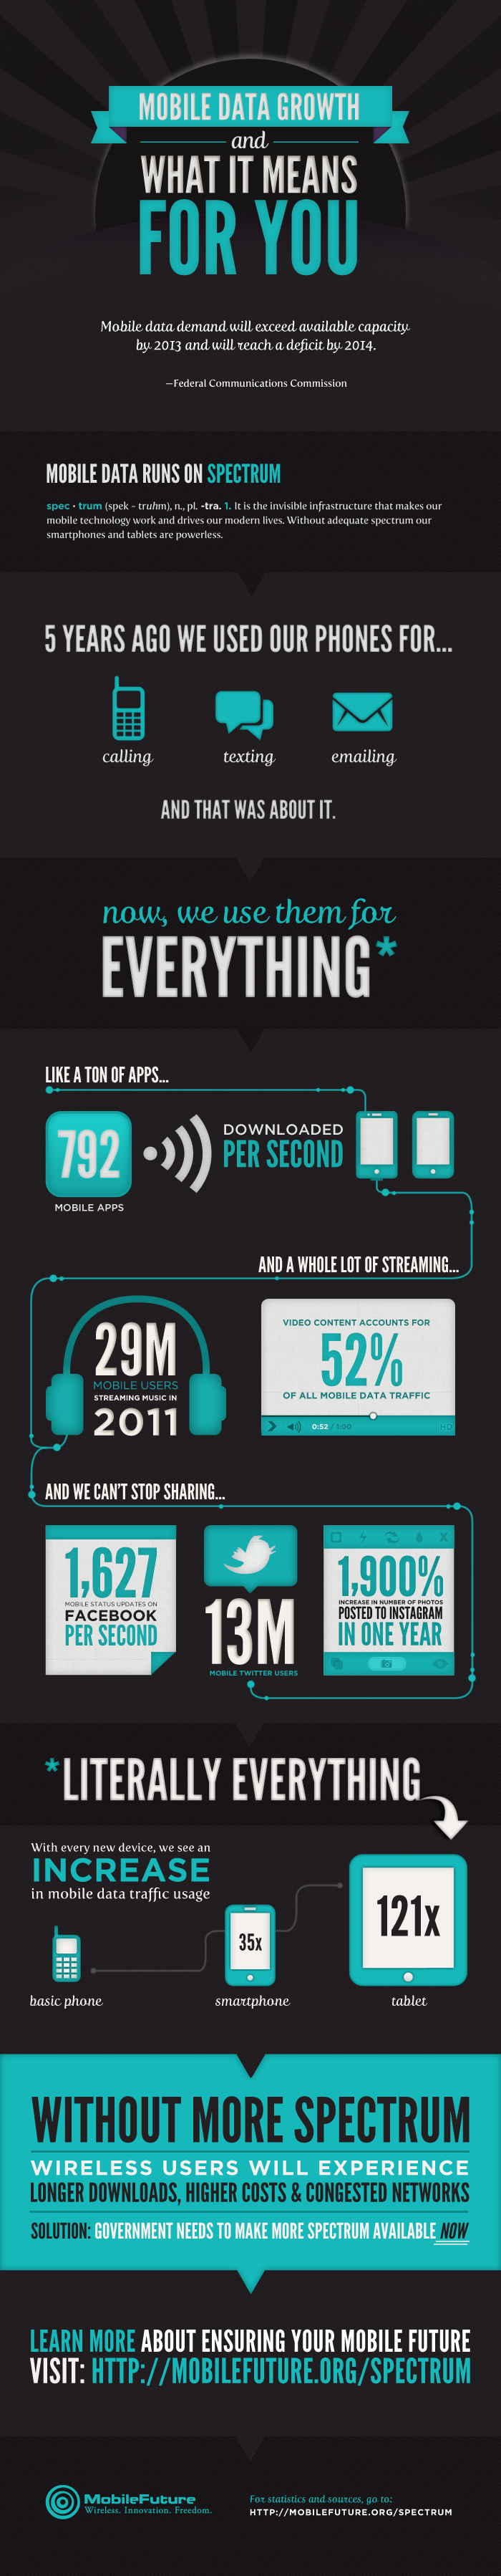 mobile-future-spectrum-infographic